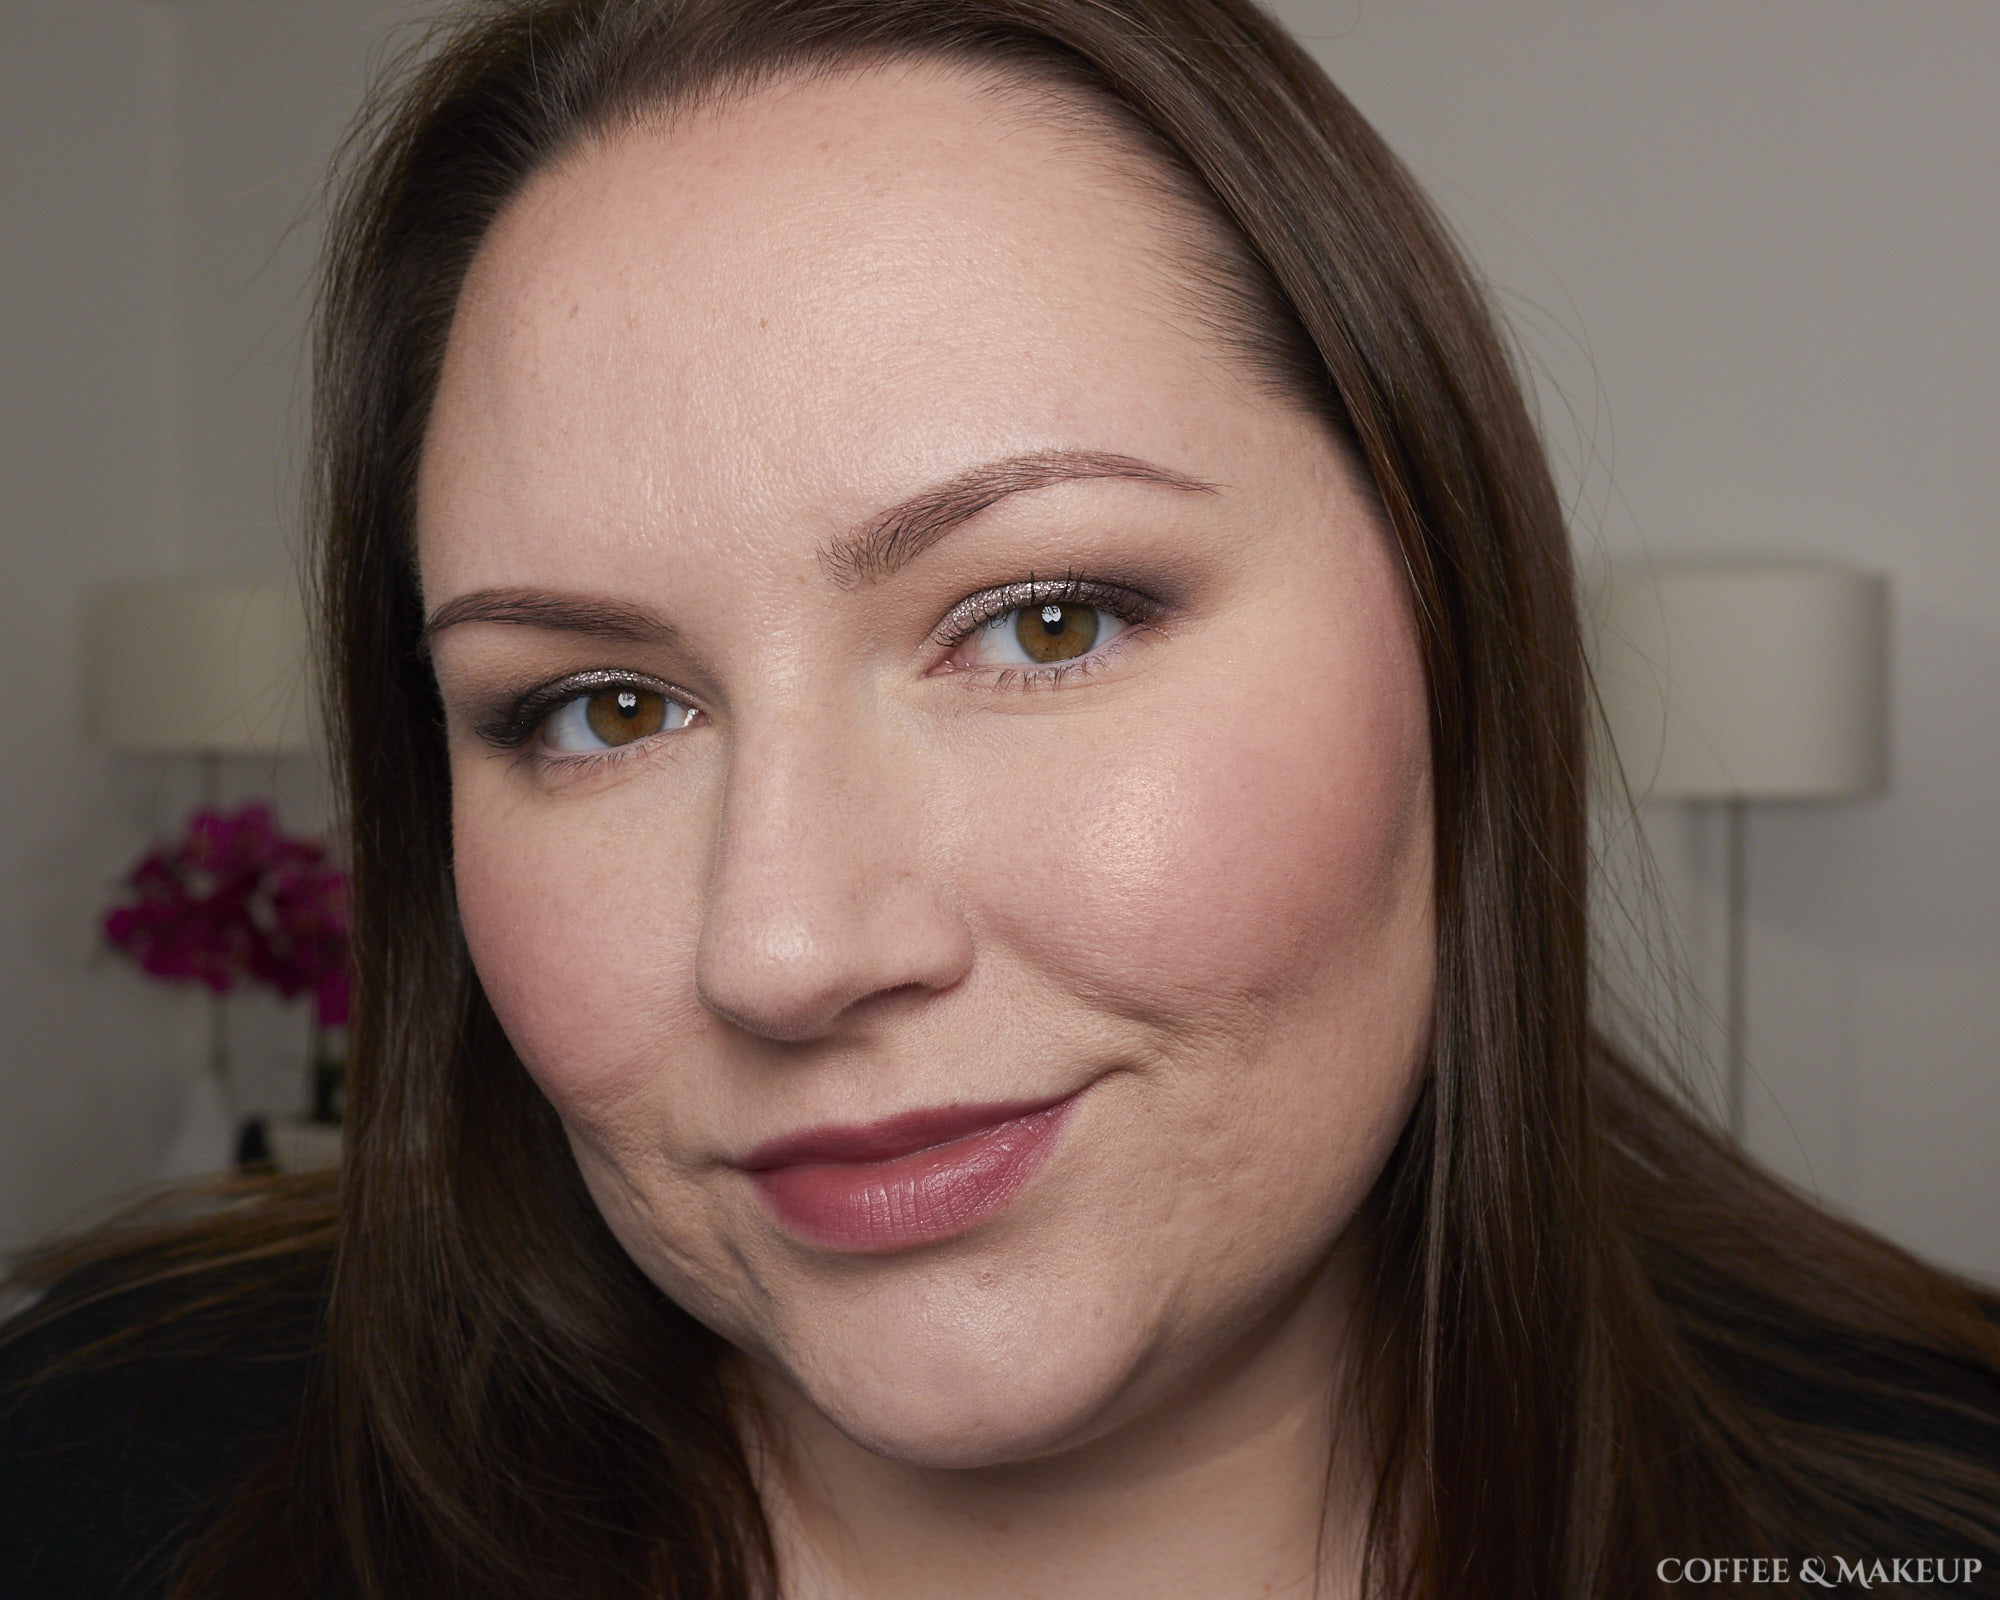 Wearing Loreal Enchanted Paradise Scented Blush in Fantastical